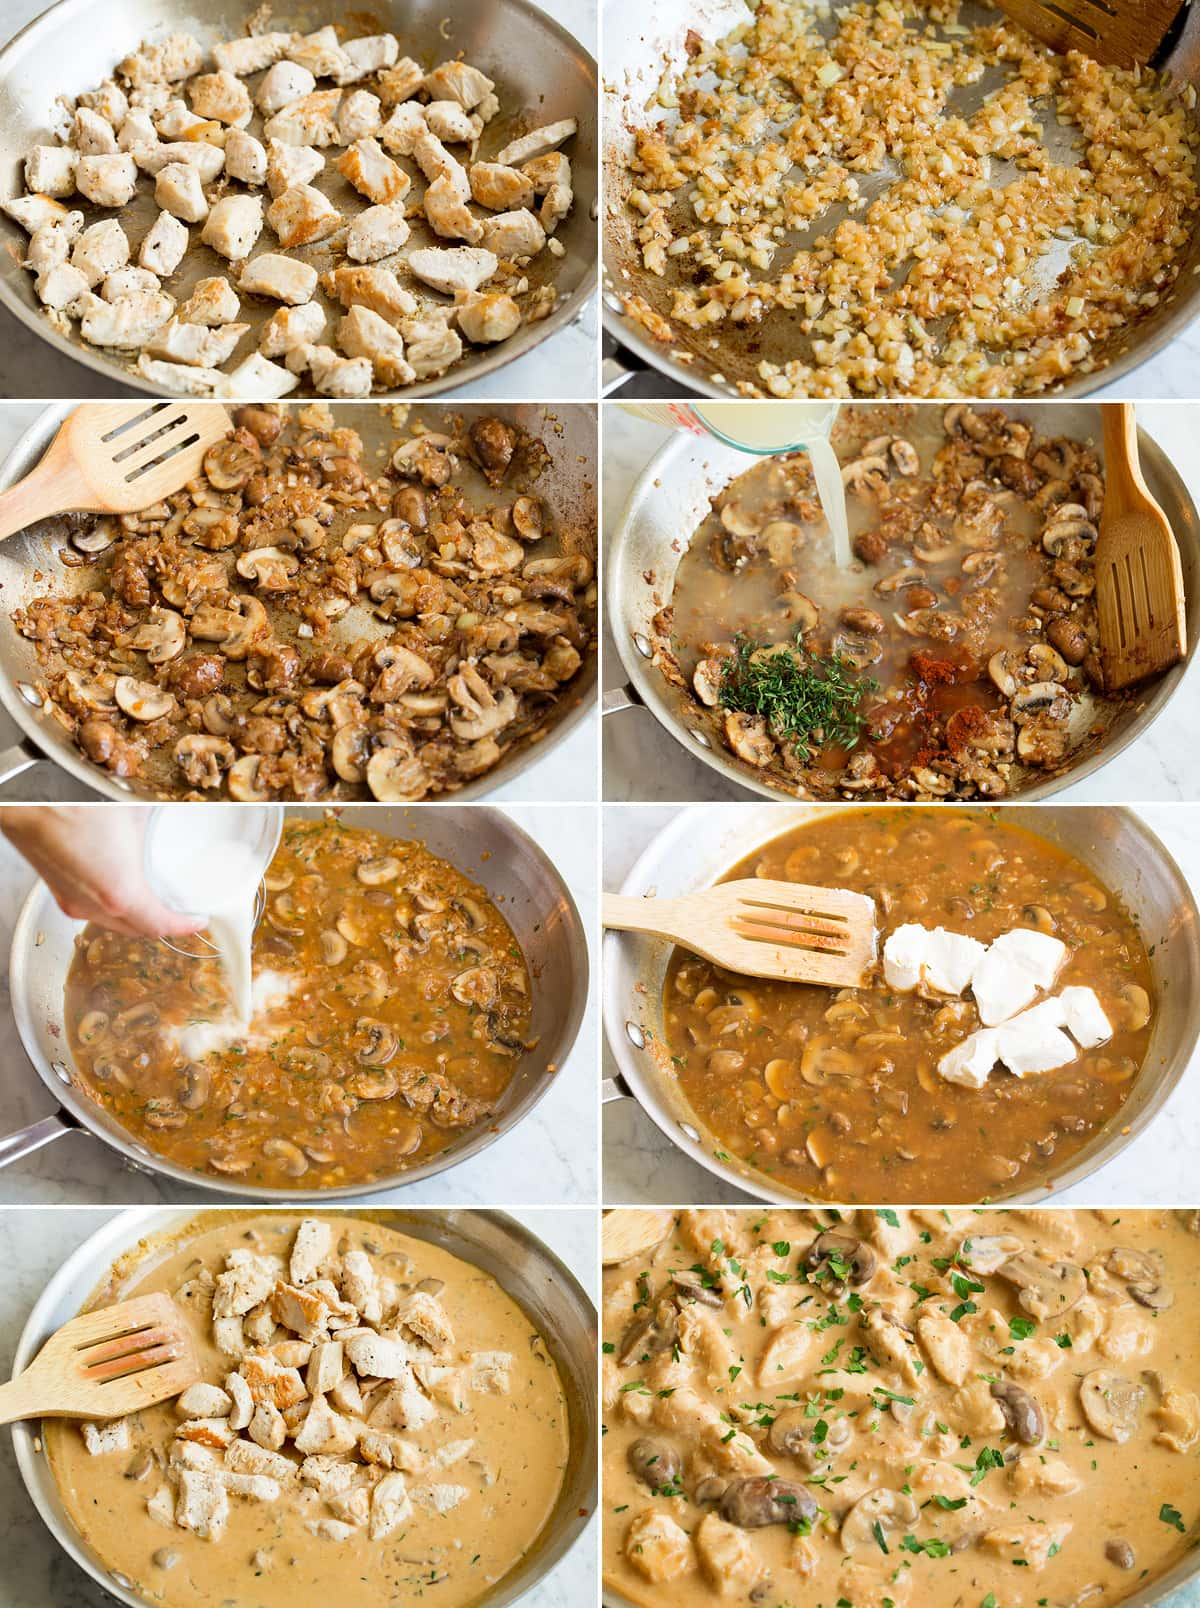 Collage of eight photos showing steps of making chicken stroganoff in a skillet. Shows browning chicken, then onions, then mushrooms. After that includes adding liquids and cream cheese for sauce then mixing chicken back in.